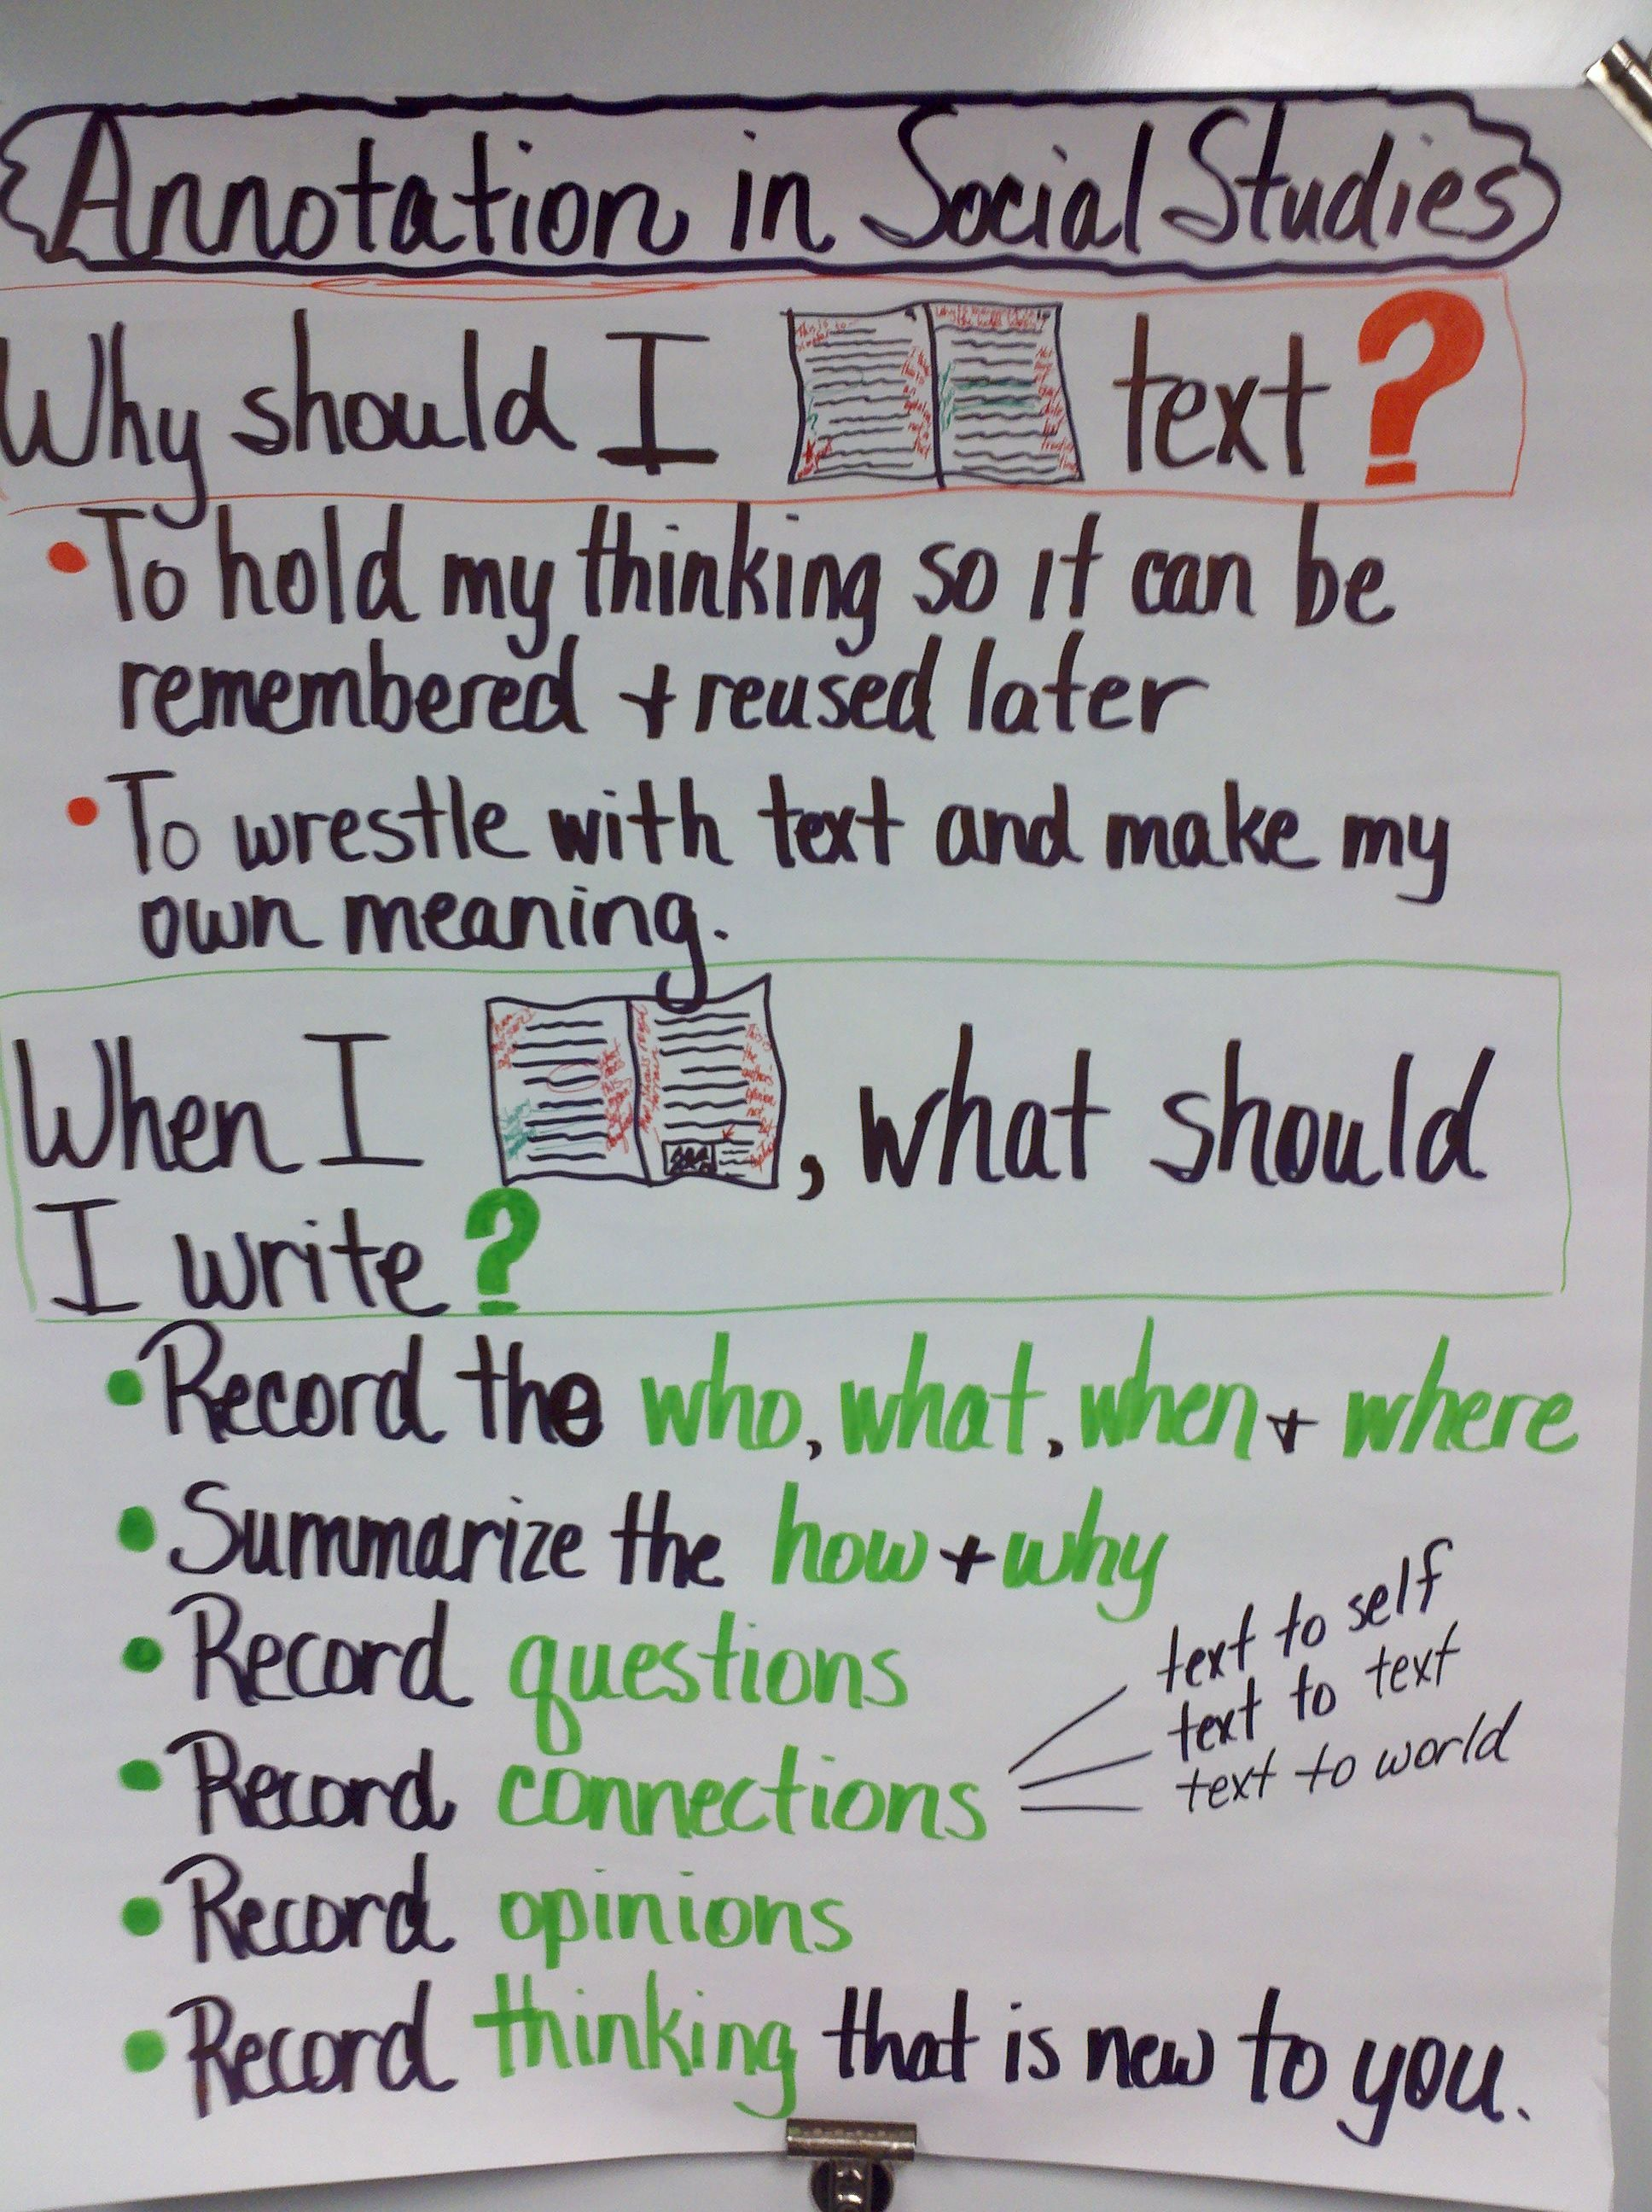 History note taking reference chart annotation anchor chart for annotation anchor chart for social studies no linkbut a great reference tool lesson how to wrestle with the text and win ccuart Gallery